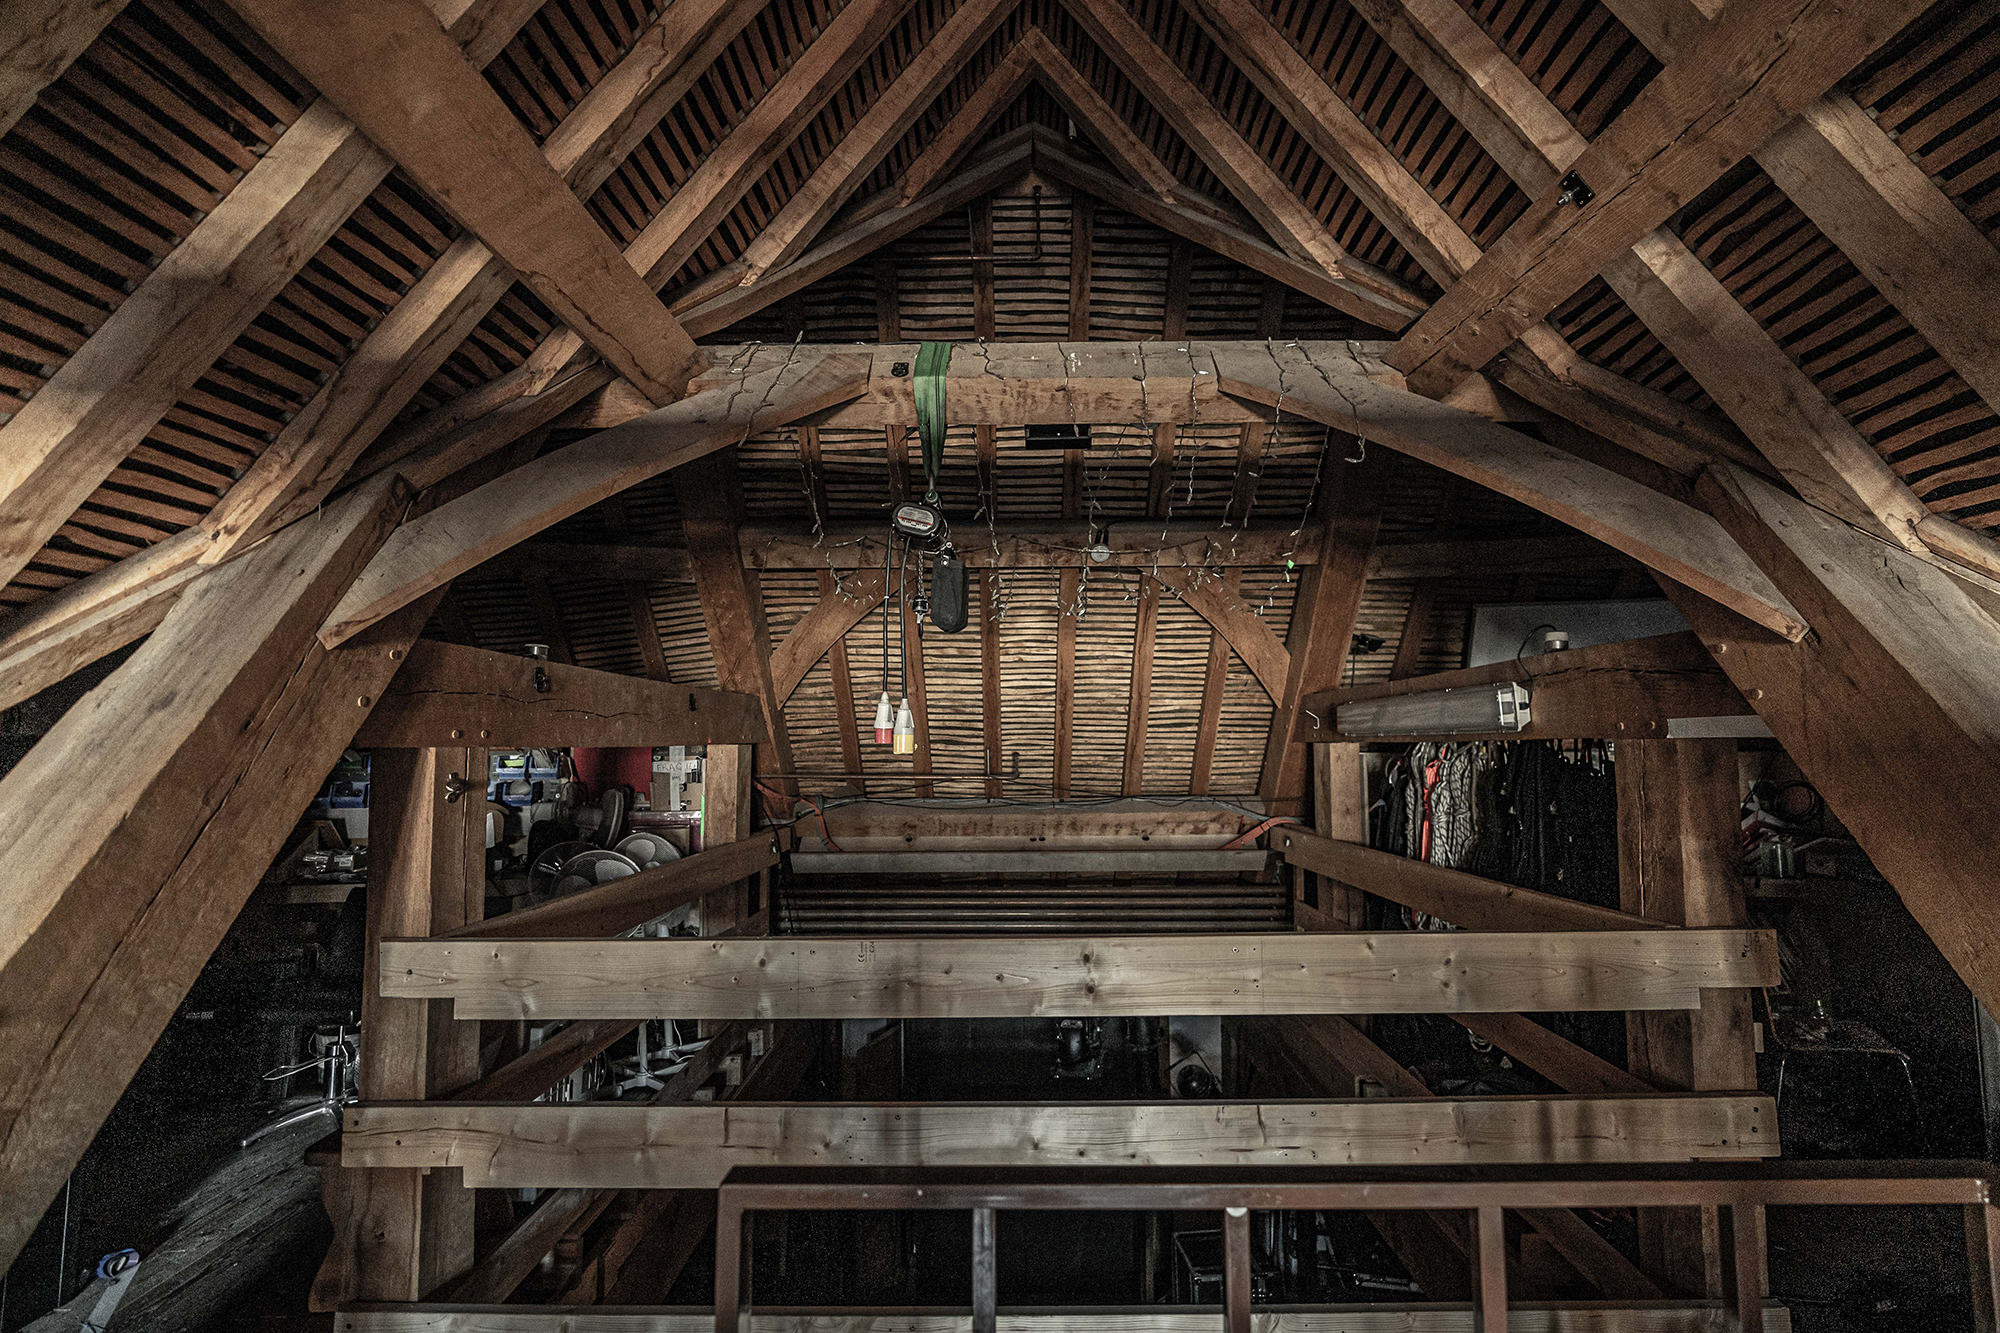 The inside of an attic with thatch roof and great oak beams. Various cables and objects hang from the rafters.